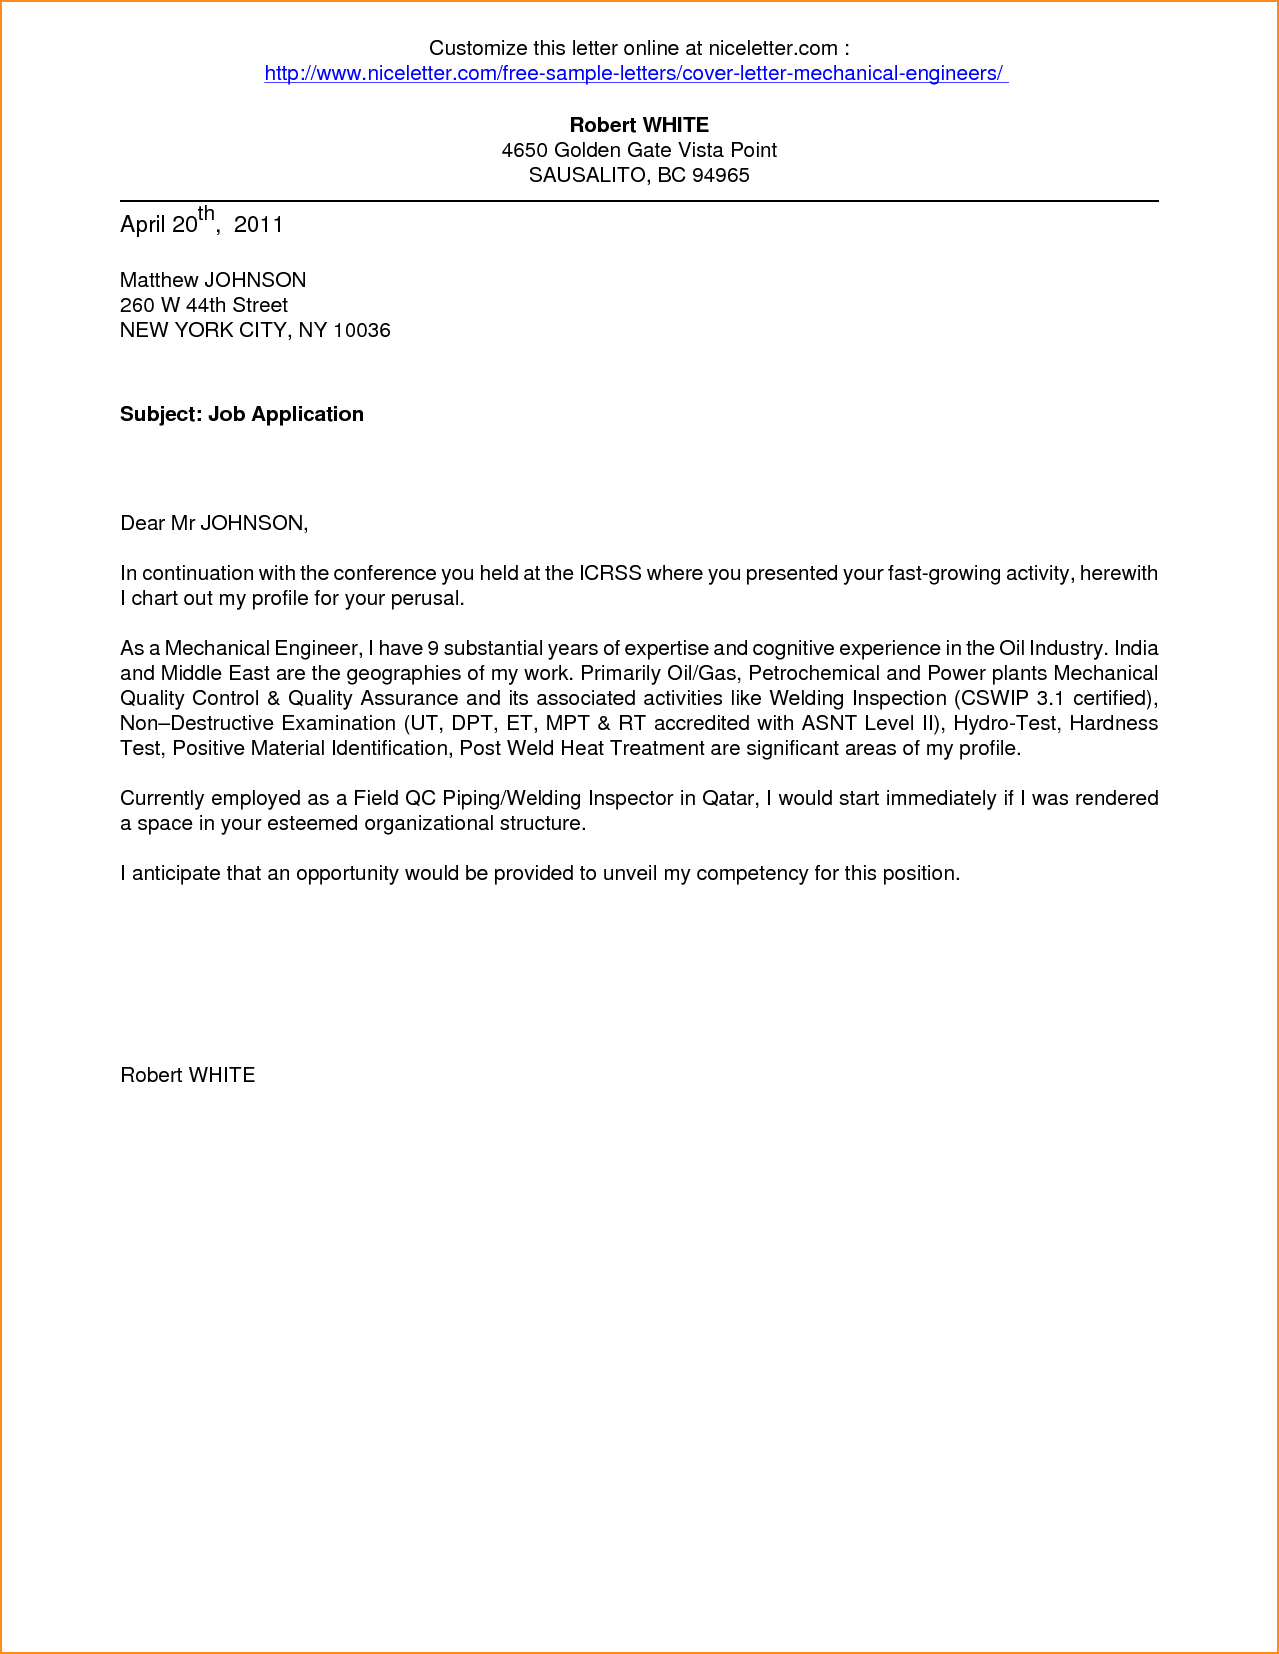 Application for employment cover letter application for What is in a cover letter for a job application